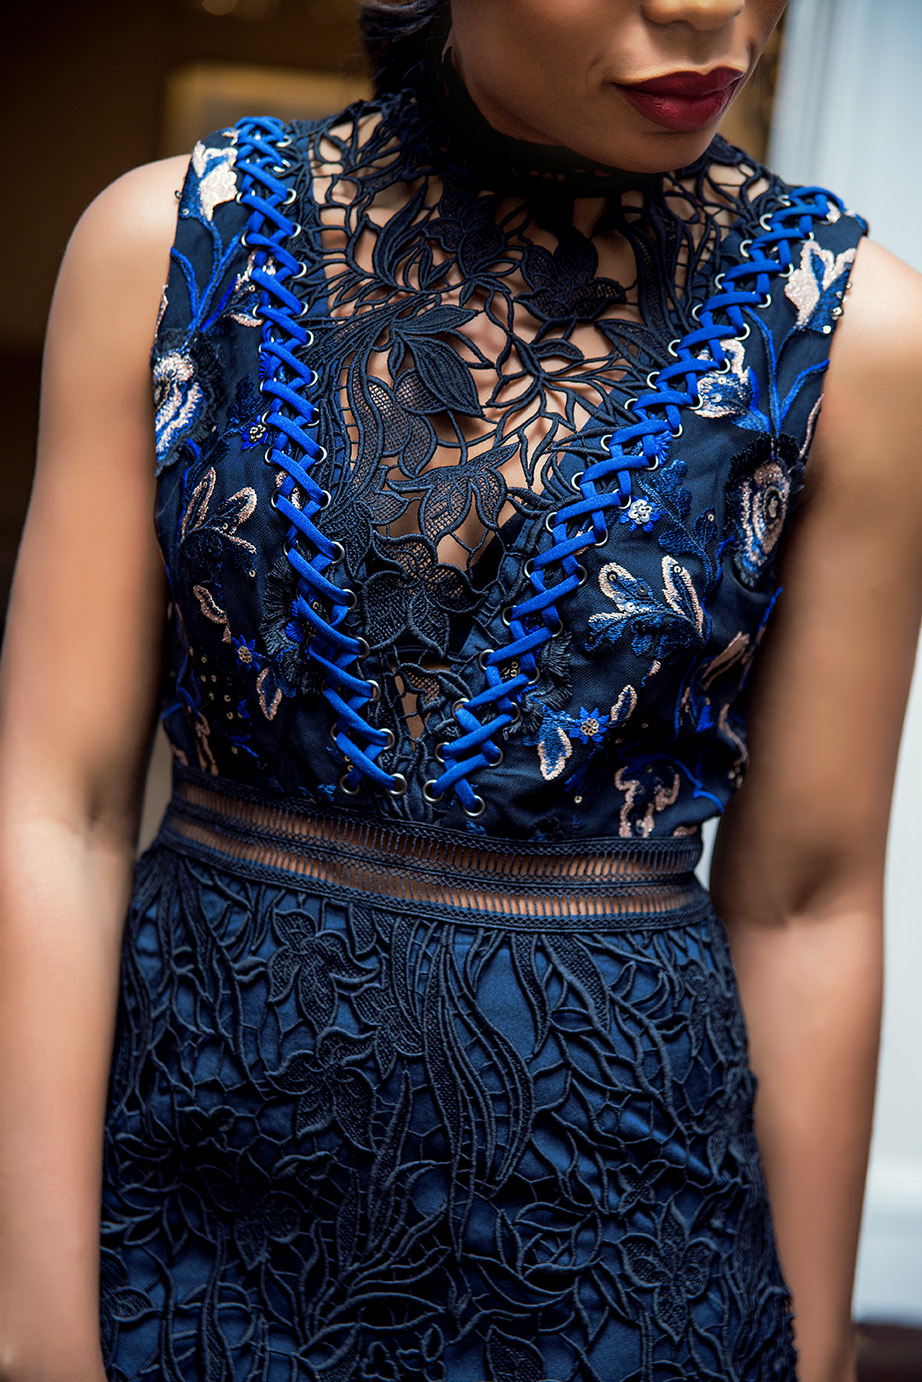 Lace details, www.jadore-fashion.com